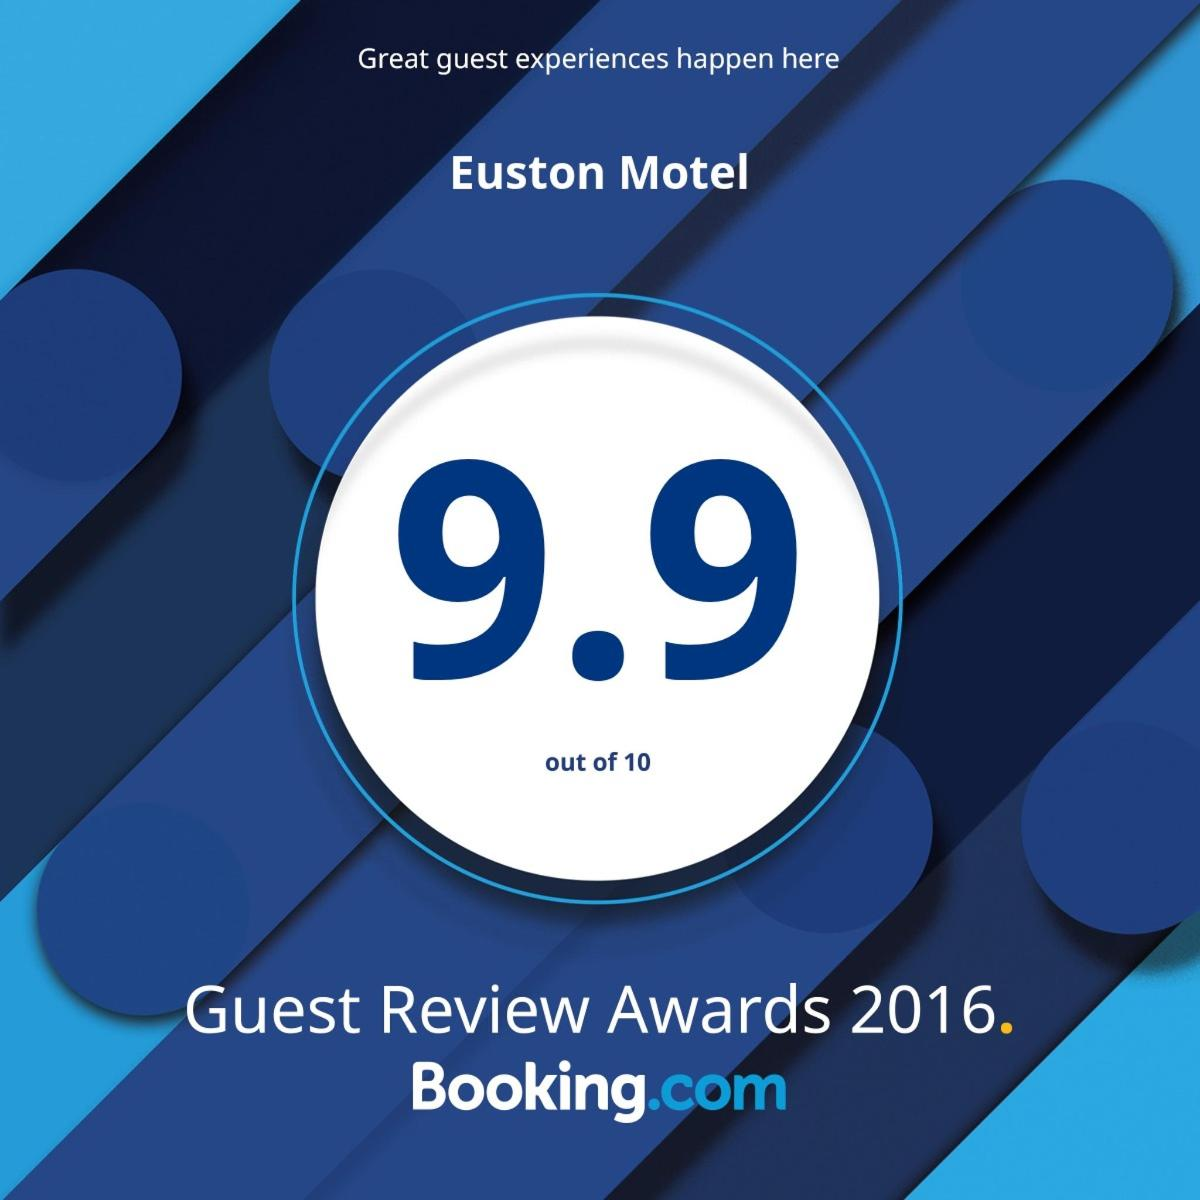 Guest Ratings